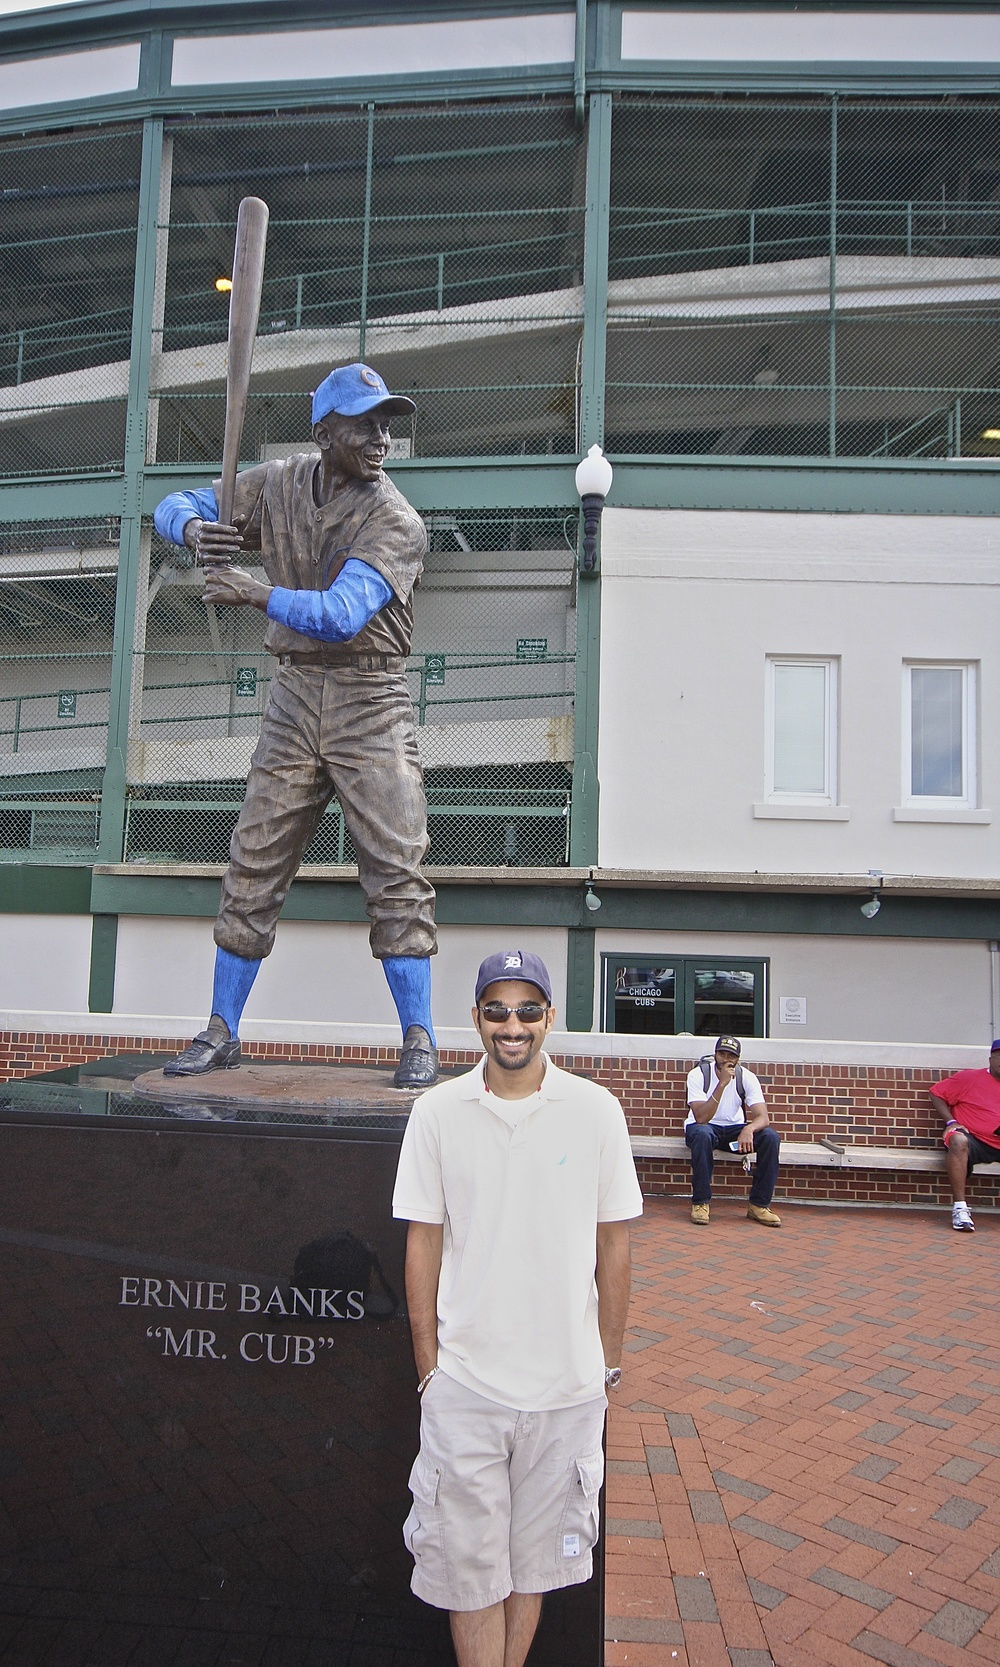 Me and Ernie Banks